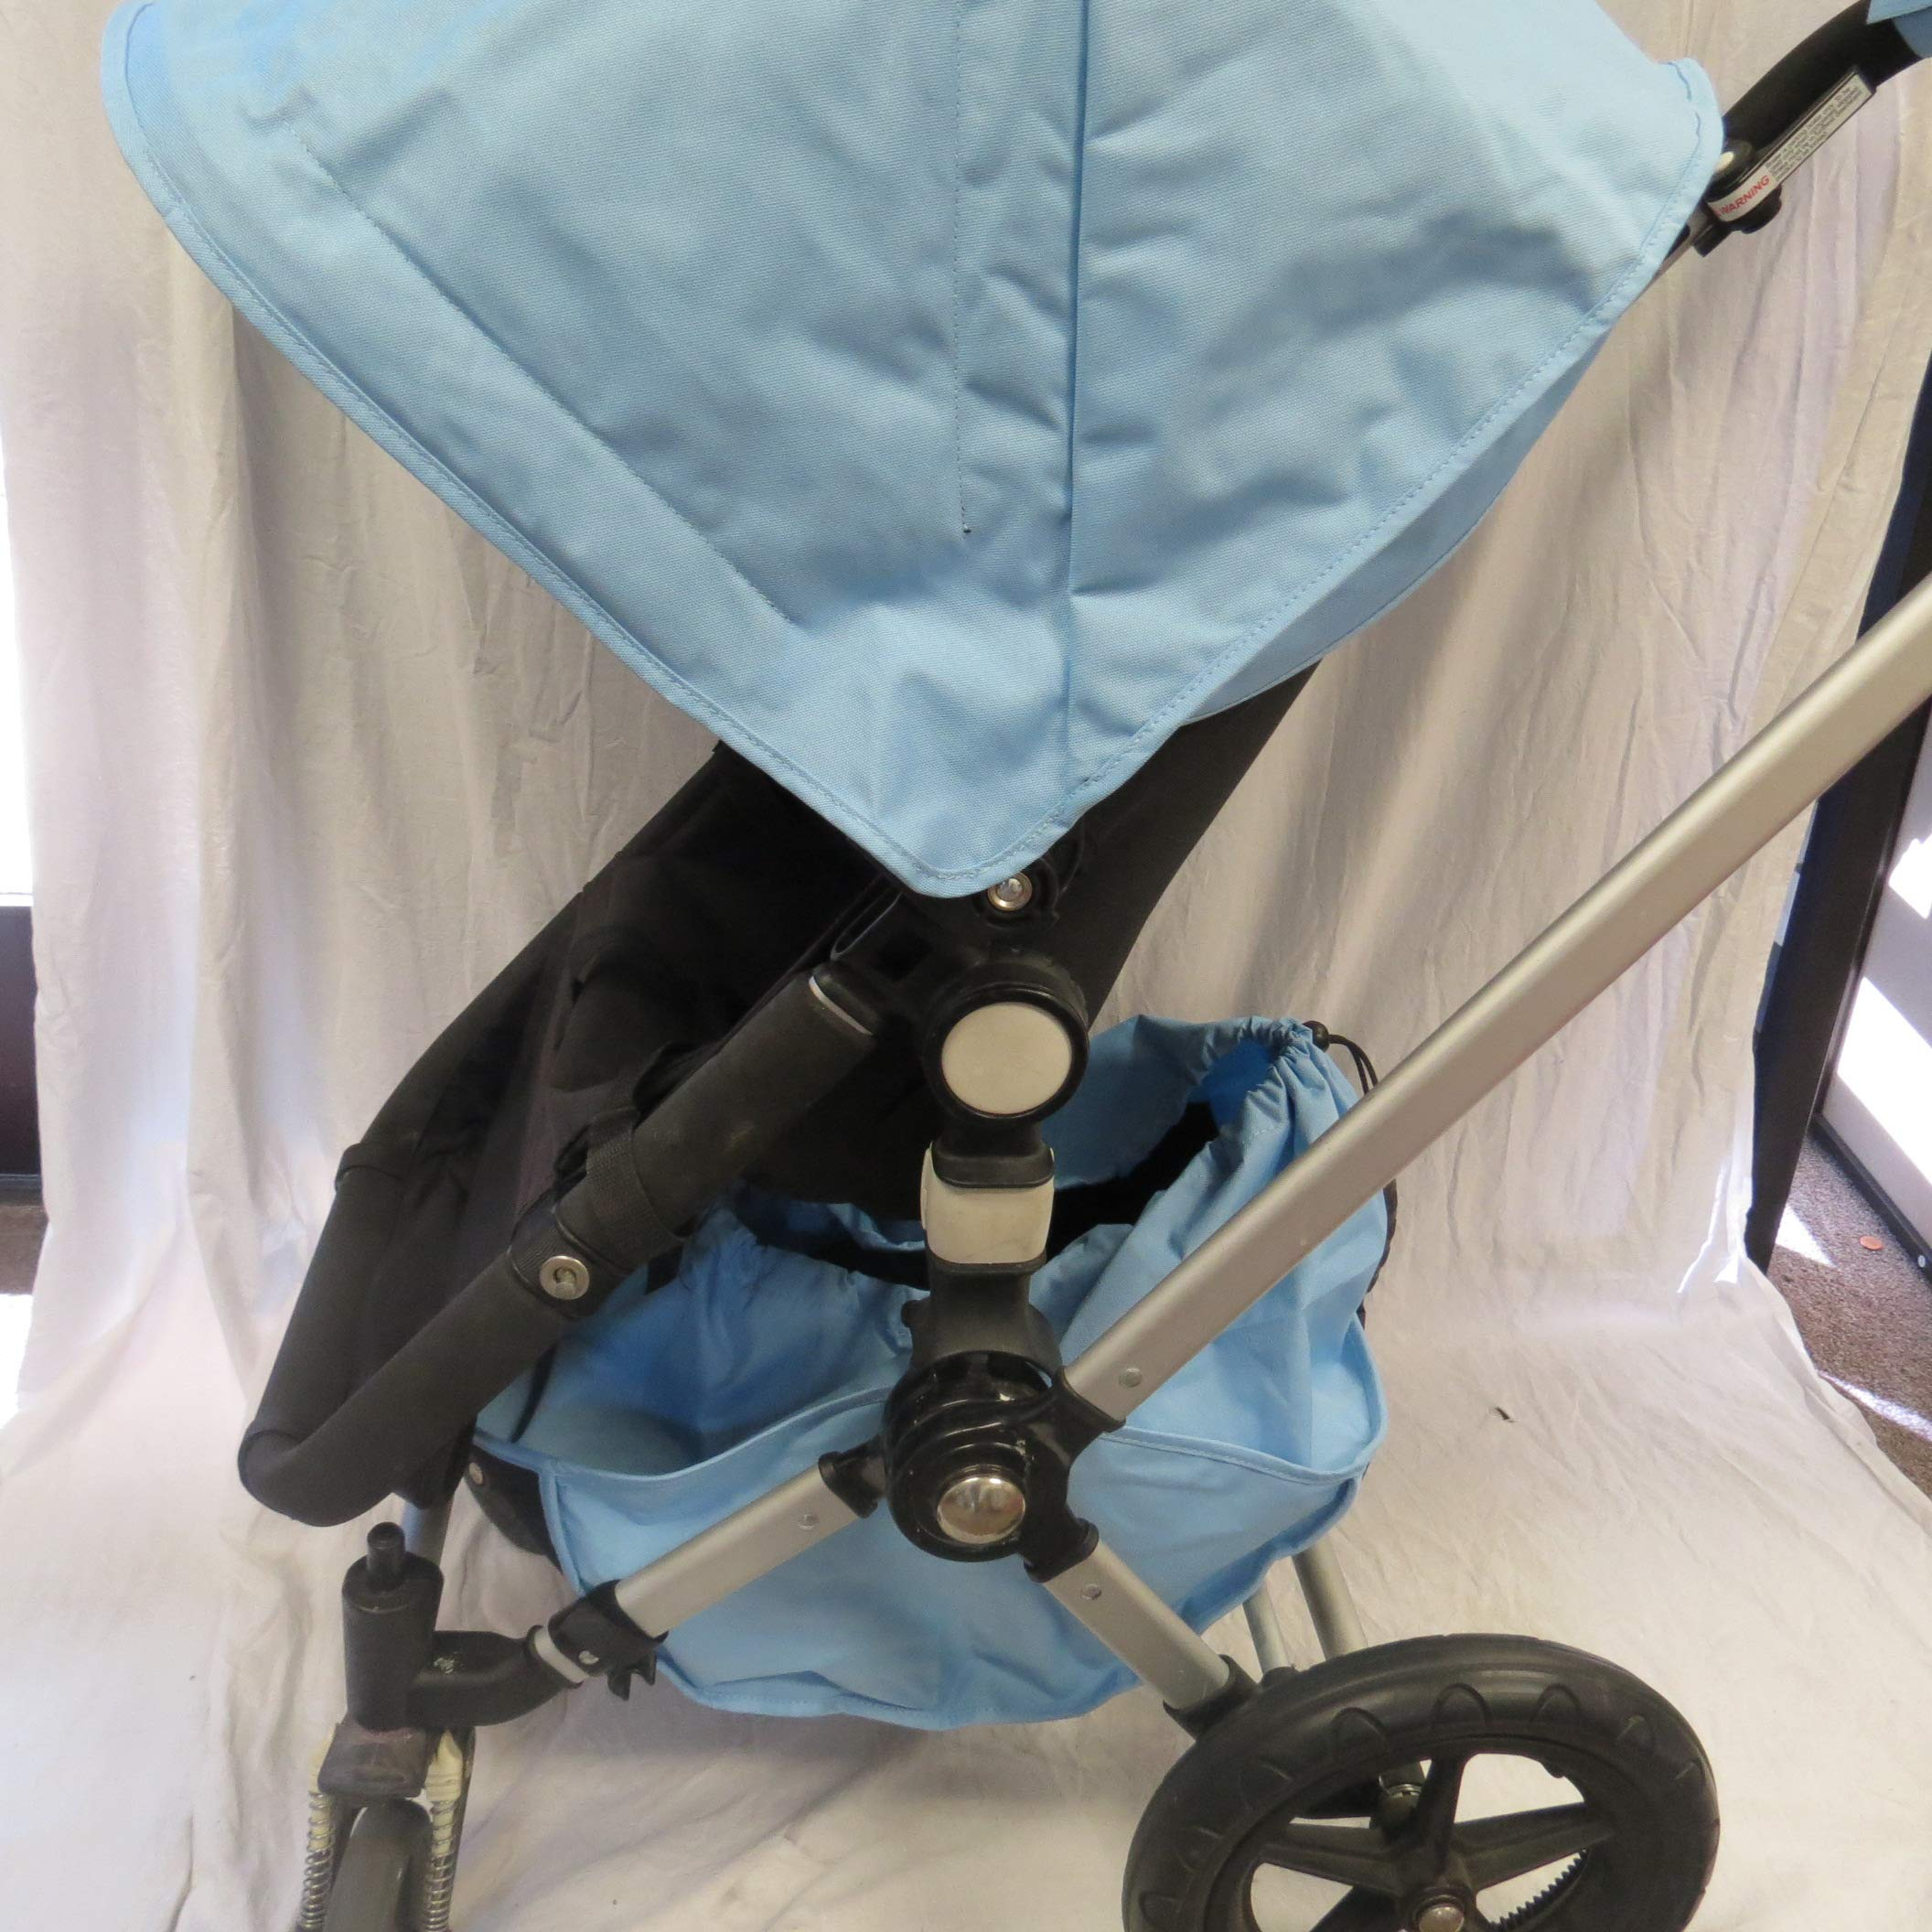 Light Blue Sun Shade Canopy Wires and Large Under Seat Storage Basket Plus Free Handle Bar Covers for Bugaboo Cameleon 1, 2, 3, Frog Baby Child Strollers by Ponini (Image #5)